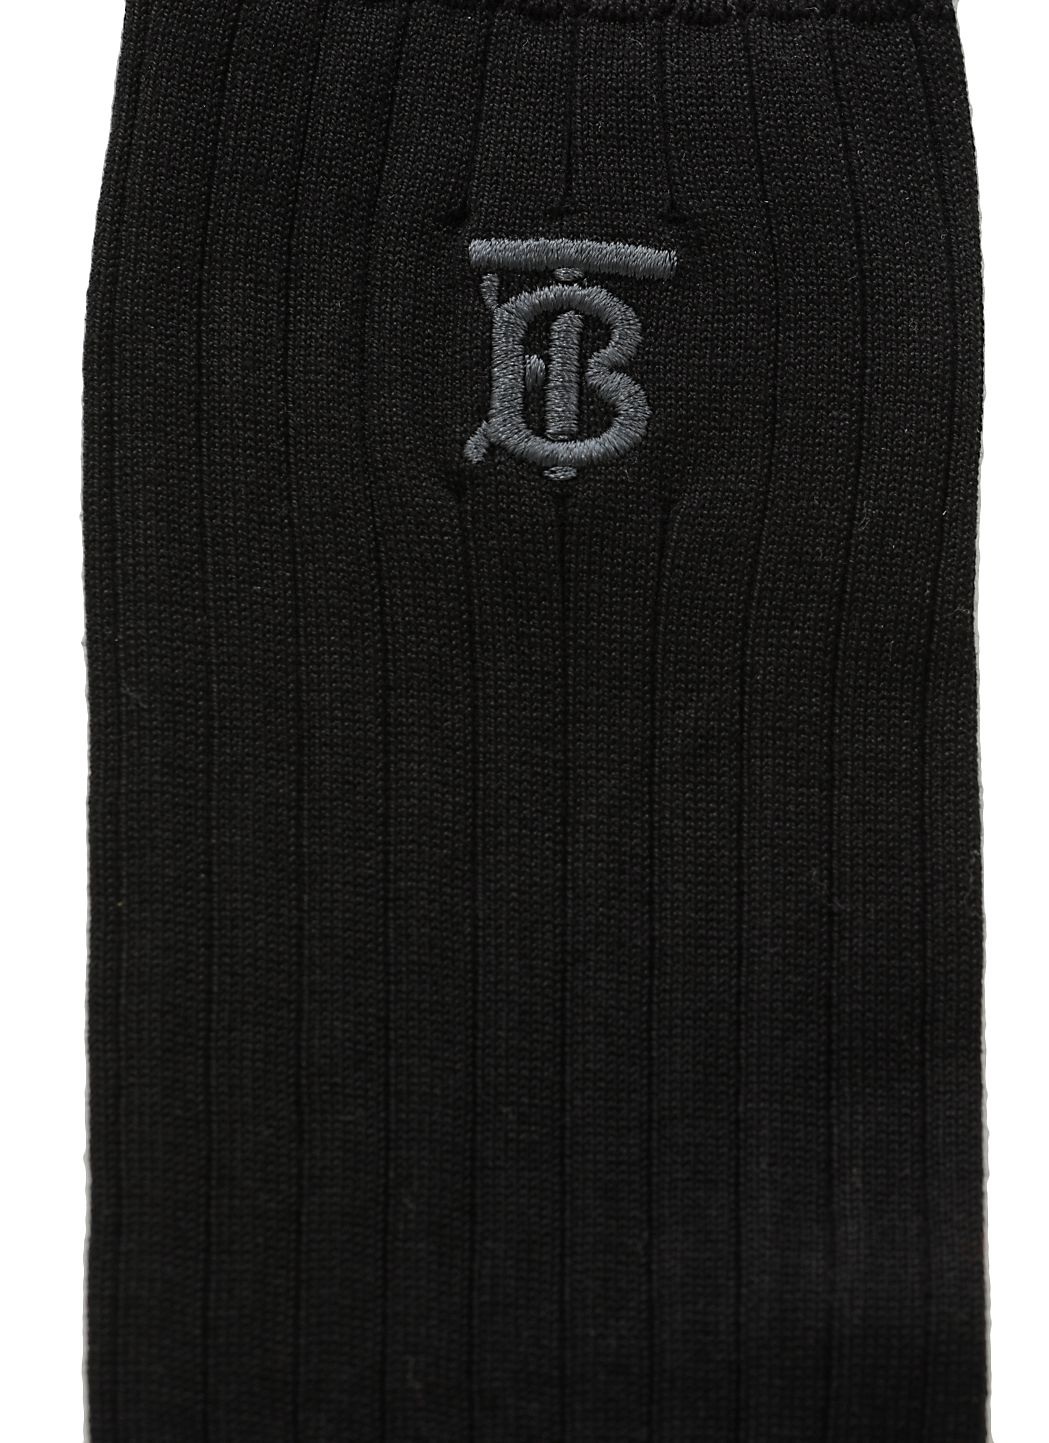 Calzini long Iconic TB monogram